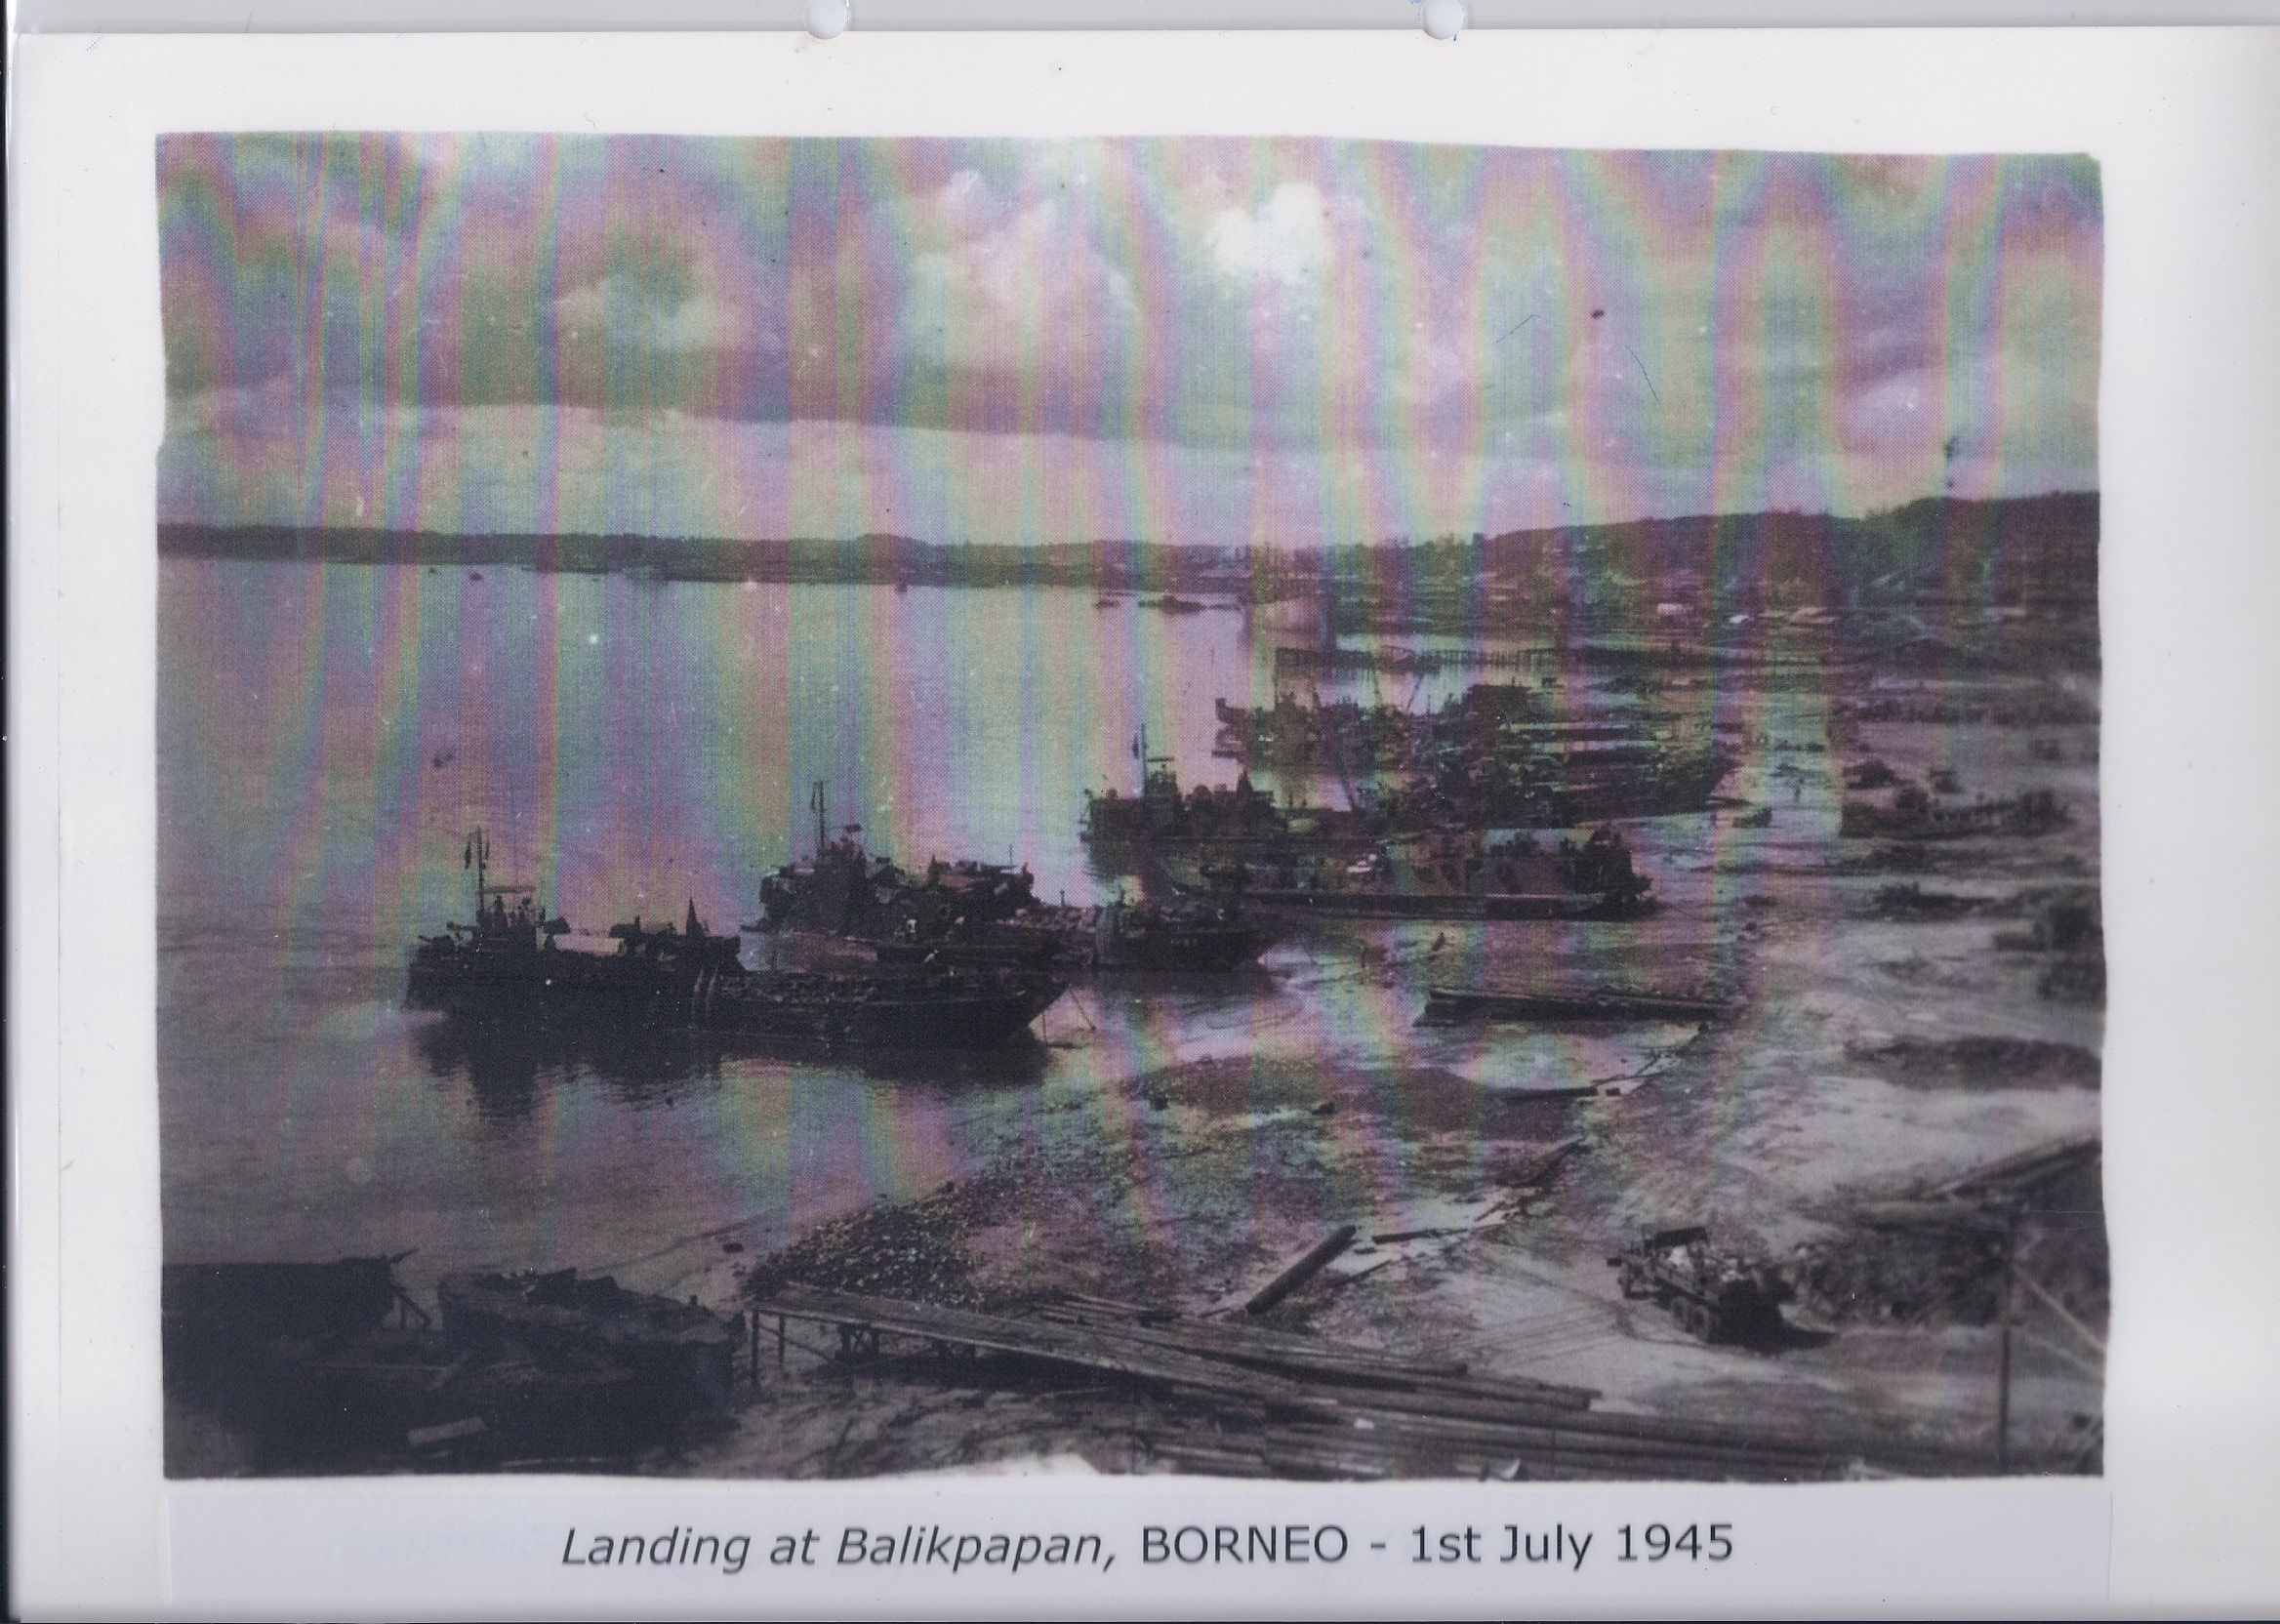 Landing at Balikpapan, BORNEO - 1st July 1945